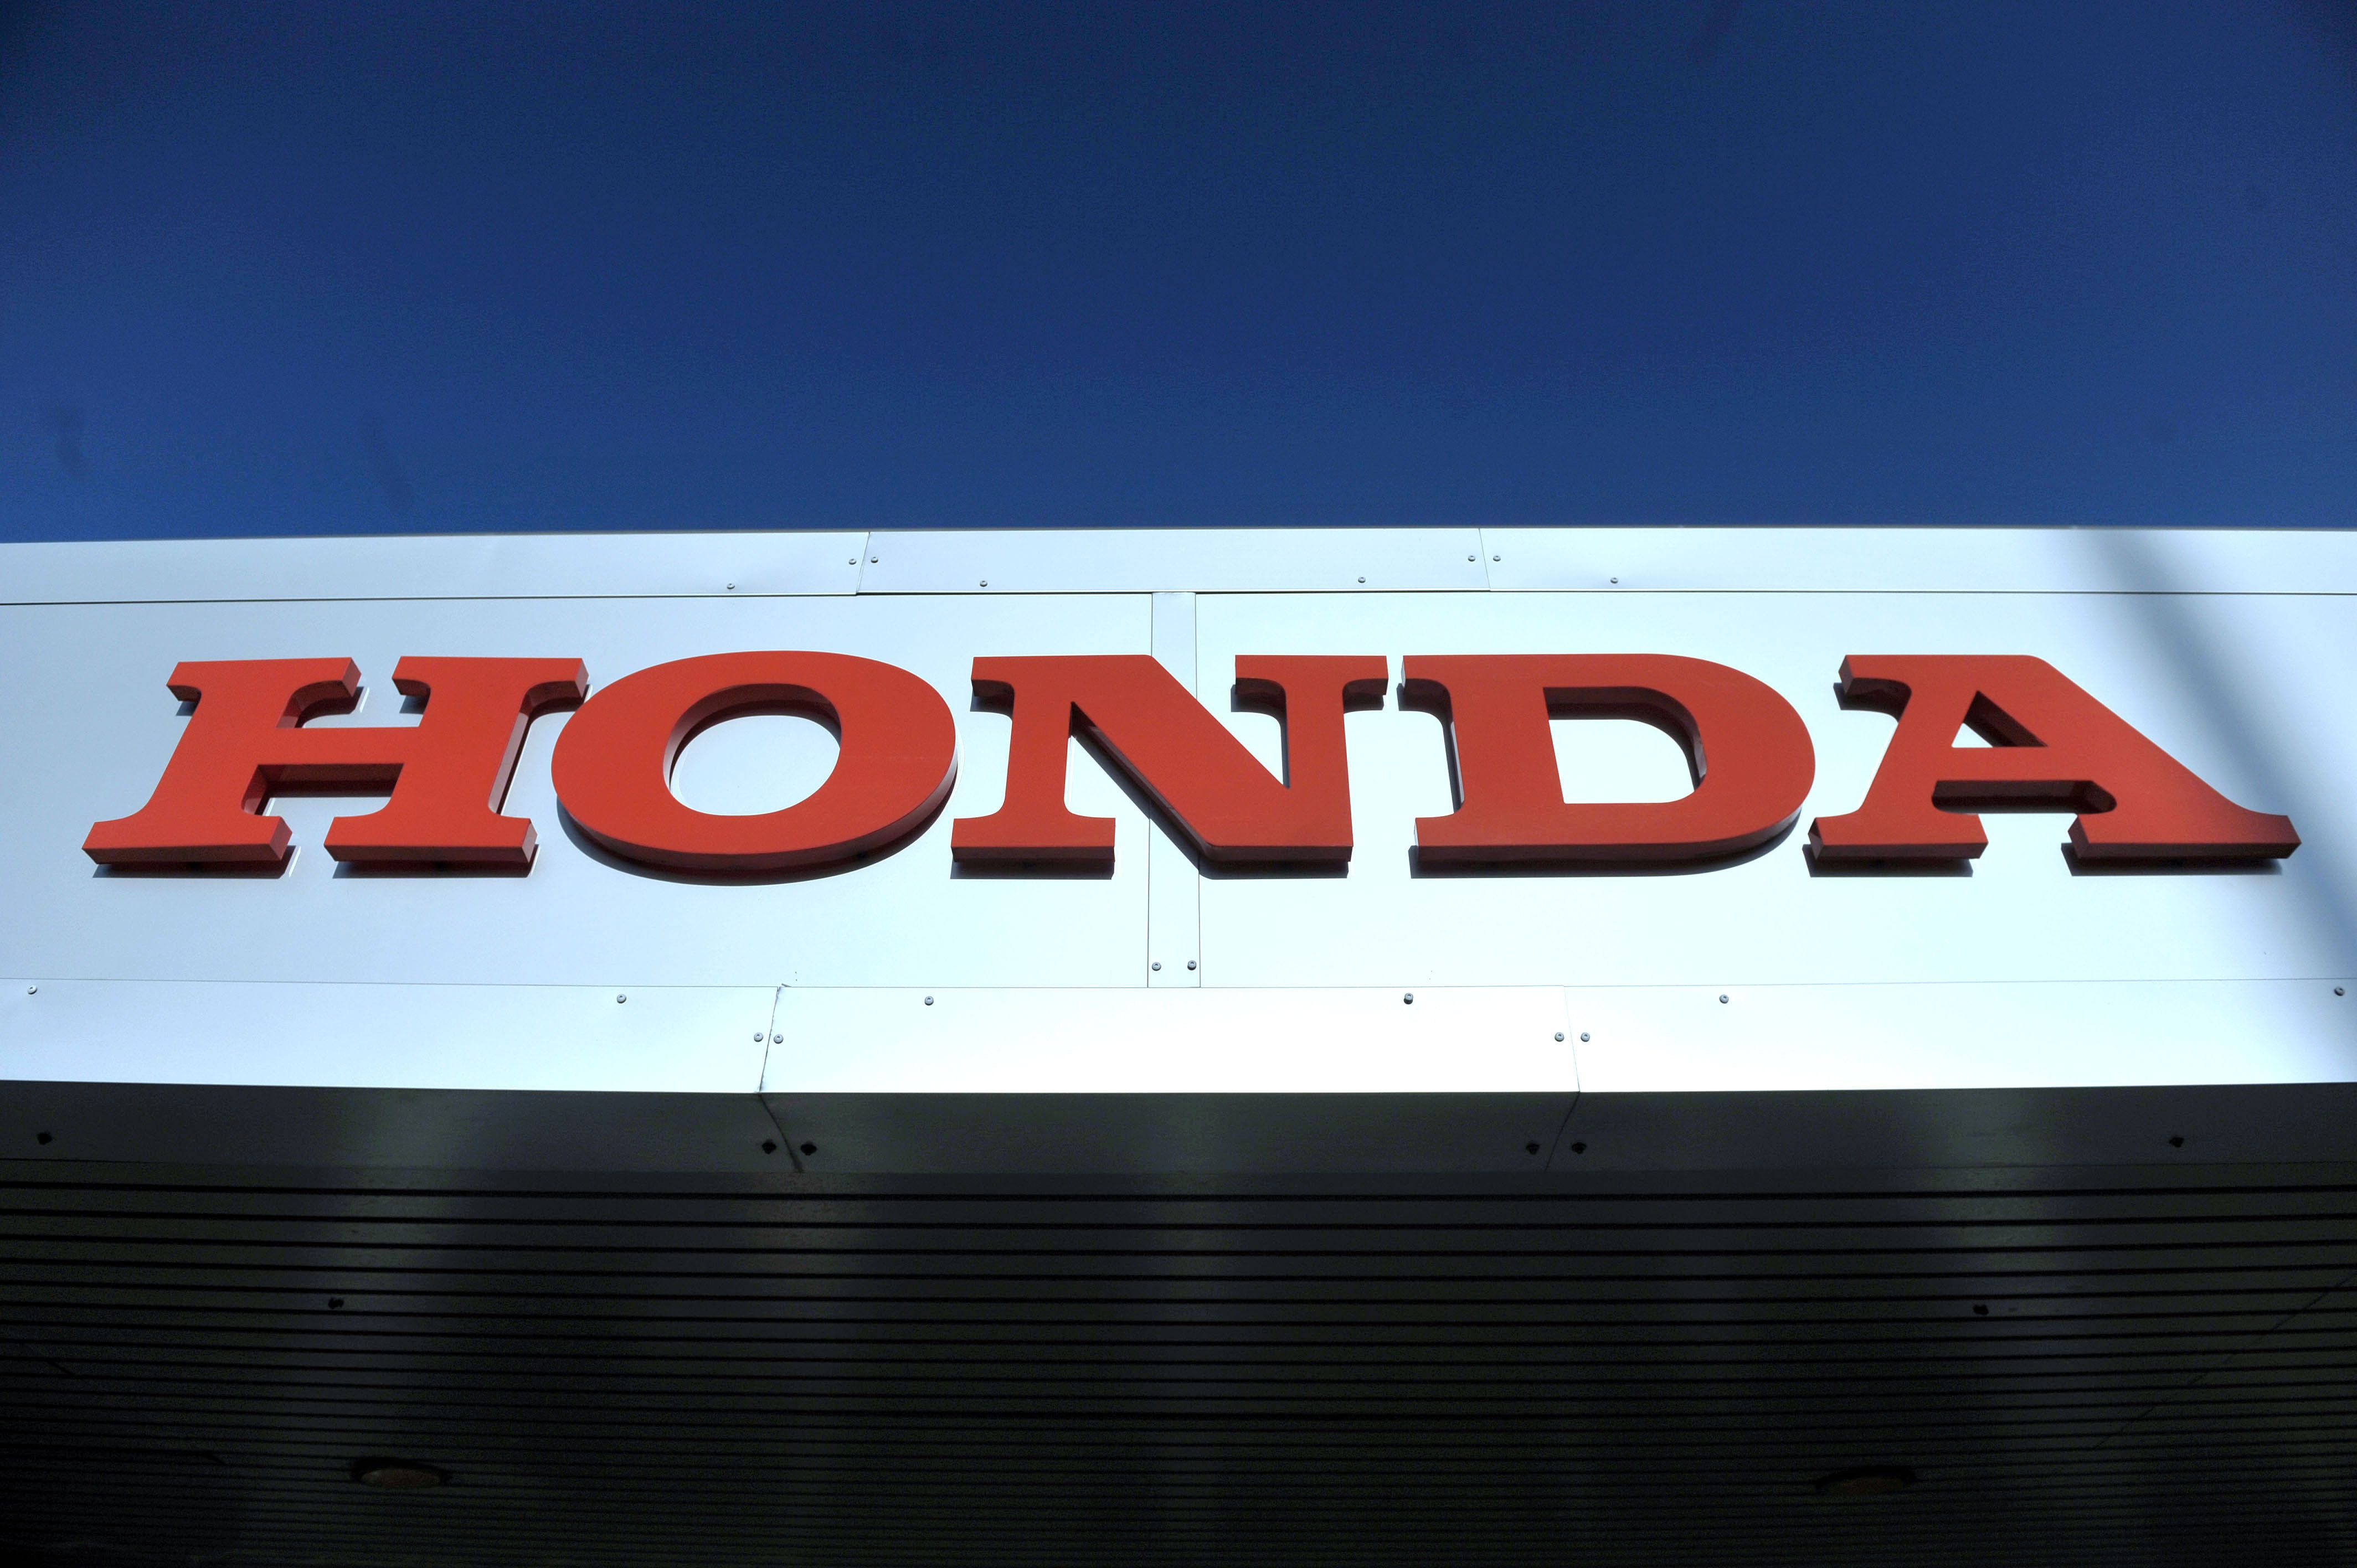 3500 employees at risk as Honda announces closure of United Kingdom plant